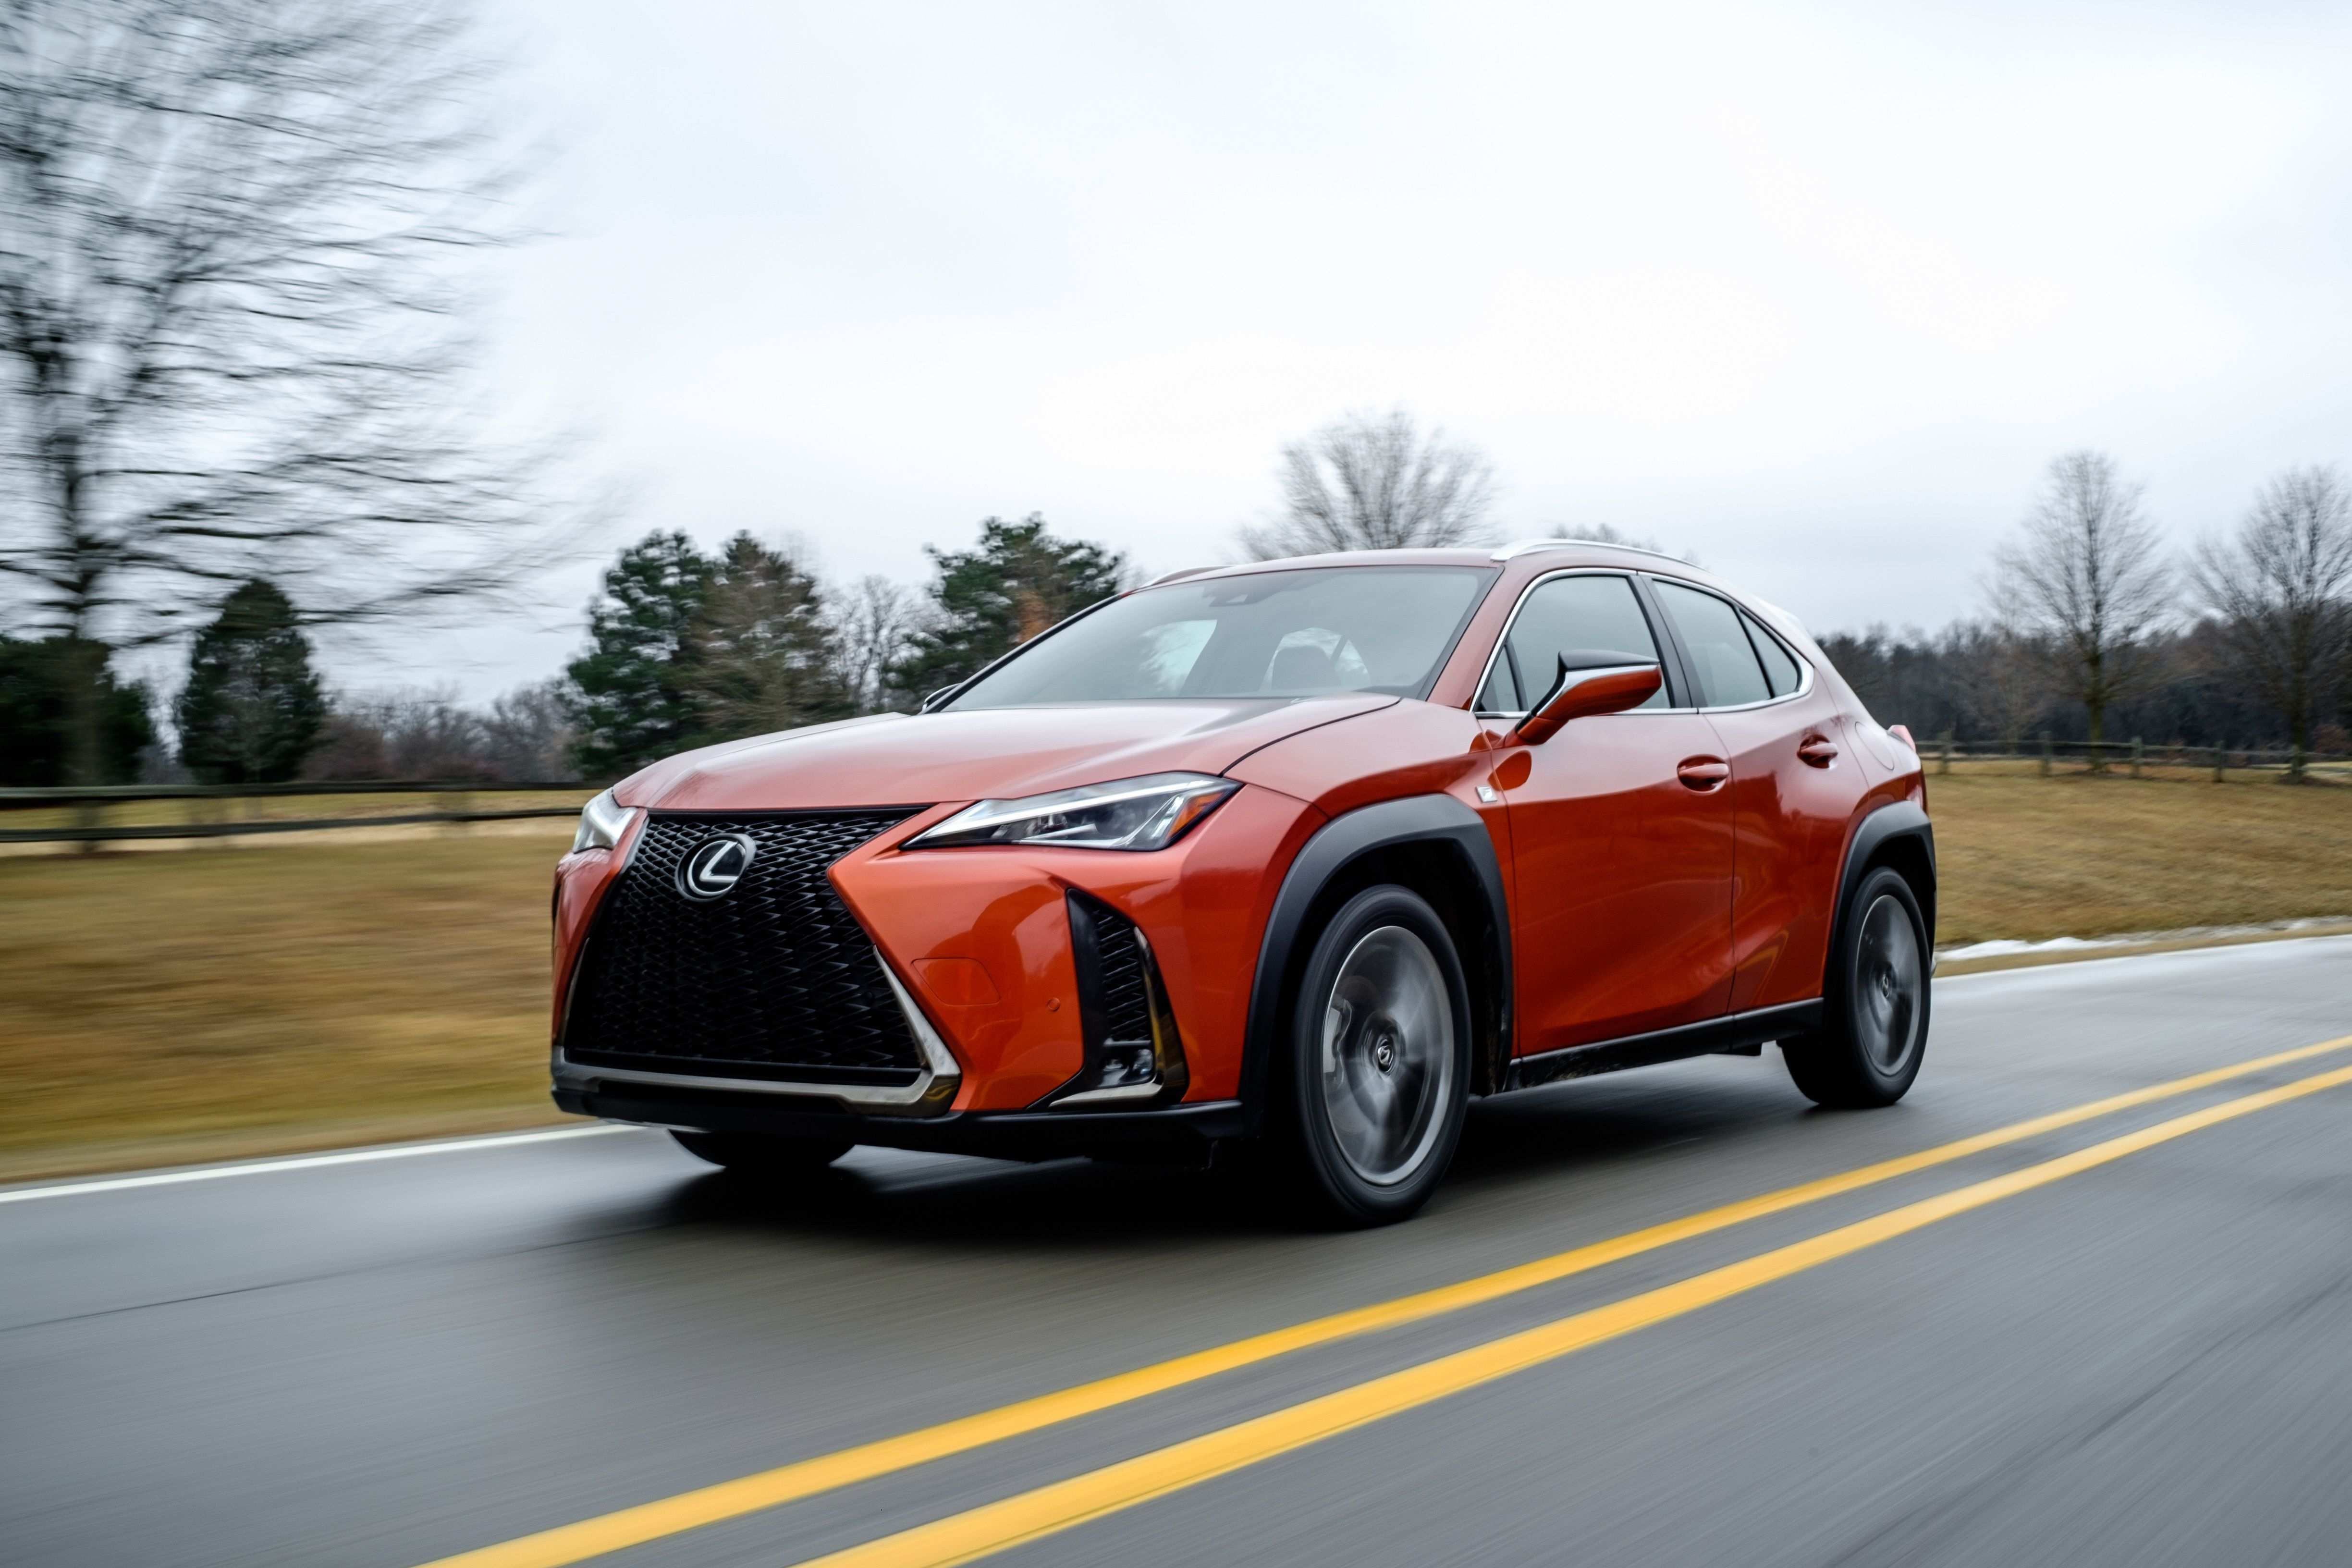 47 New New Jeepeta Lexus 2019 Redesign Price And Review Configurations by New Jeepeta Lexus 2019 Redesign Price And Review